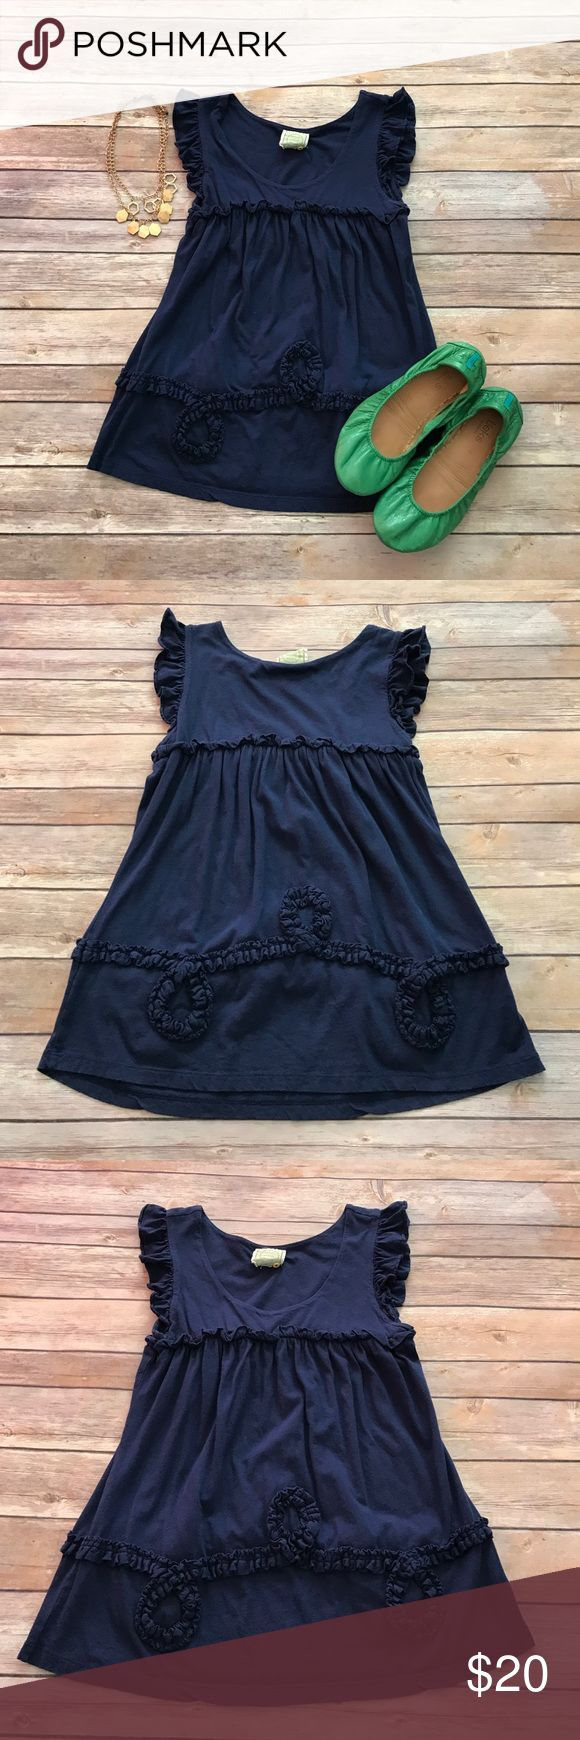 Anthropologie navy tee Anthropologie Little Yellow Button tee in good used condition. There is an almost invisible snag (pictured) near the bottom, but otherwise no flaws. Make an offer or bundle and save! Anthropologie Tops Tees - Short Sleeve